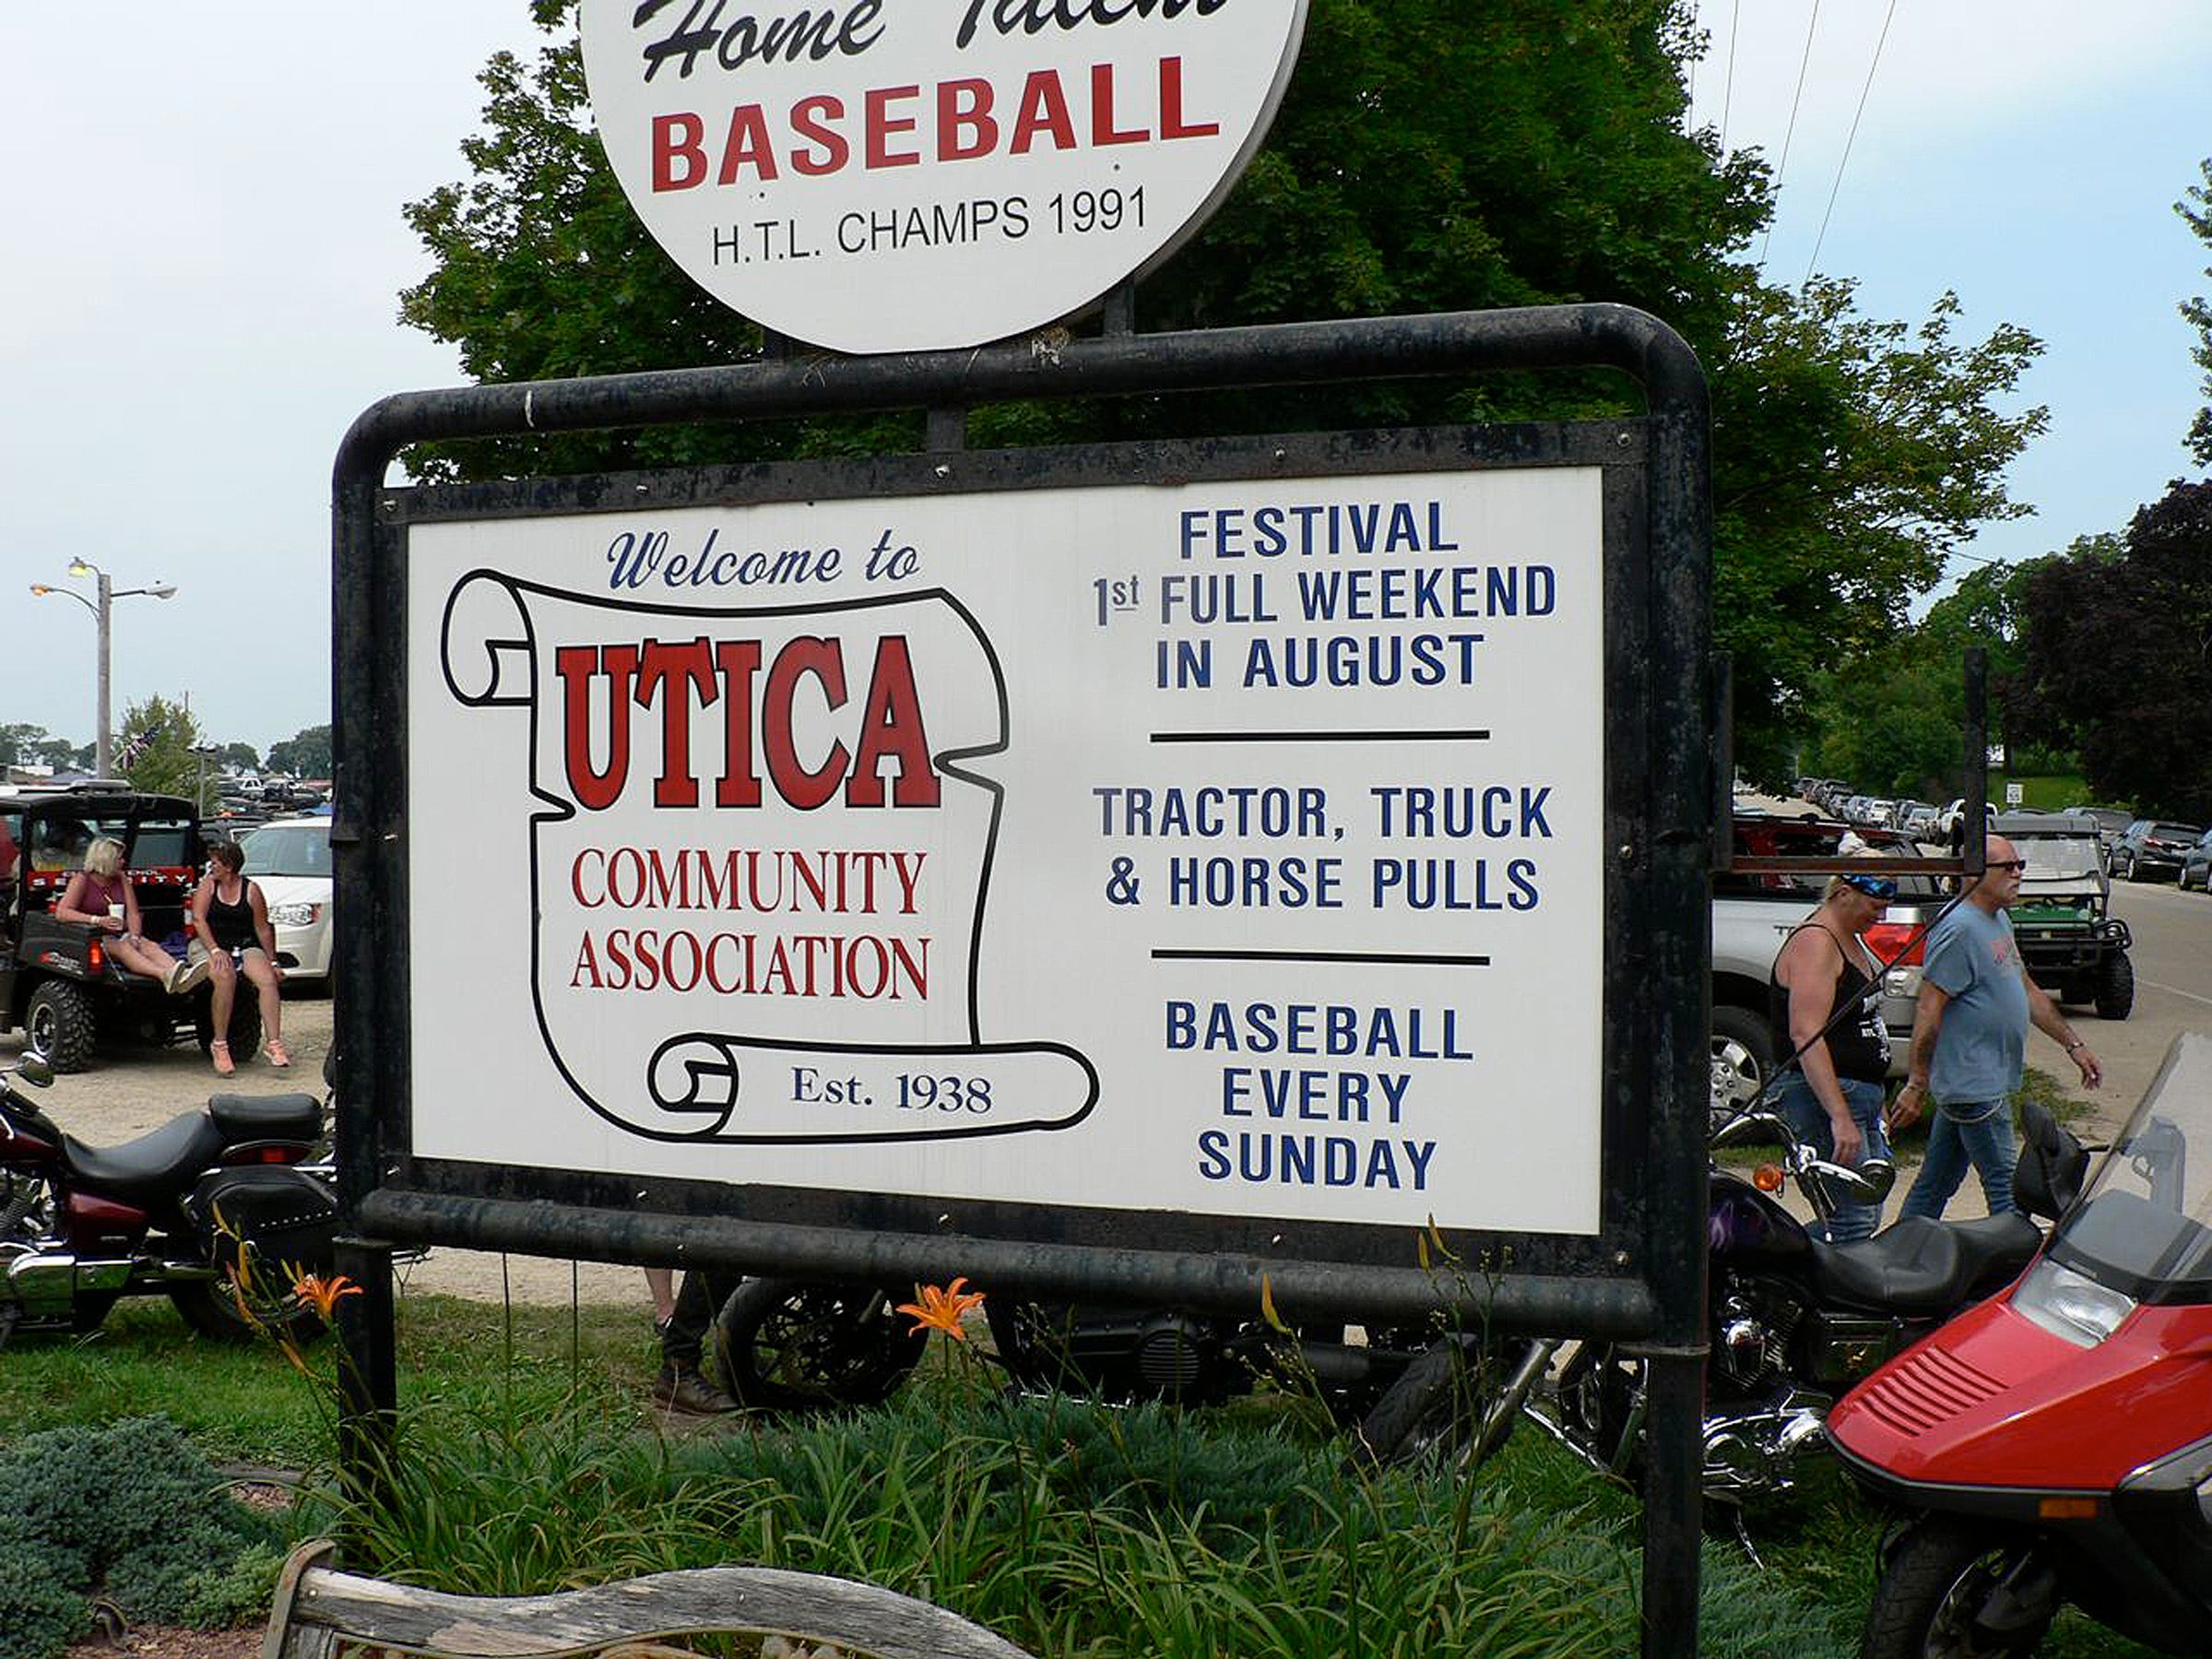 Utica is home to just a few people but becomes the destination for thousands once a year.